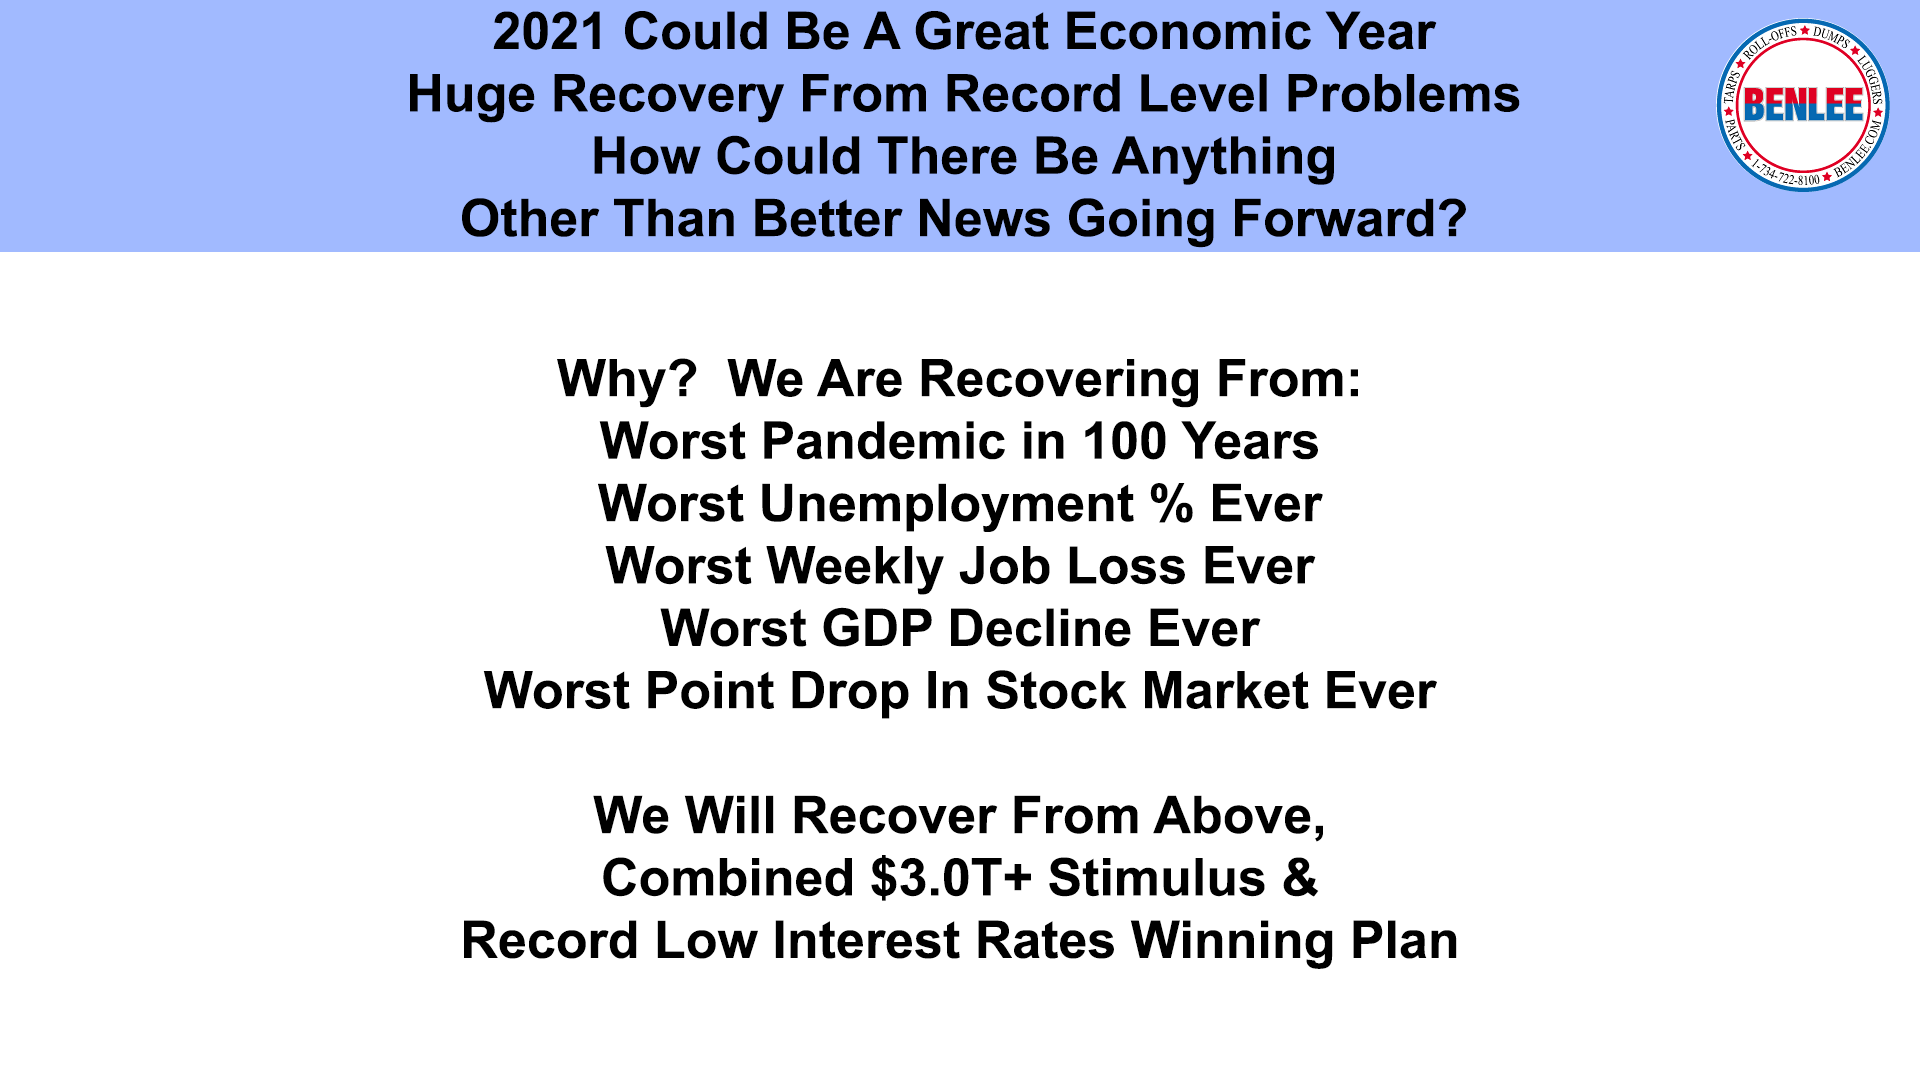 2021 Could Be A Great Economic Year